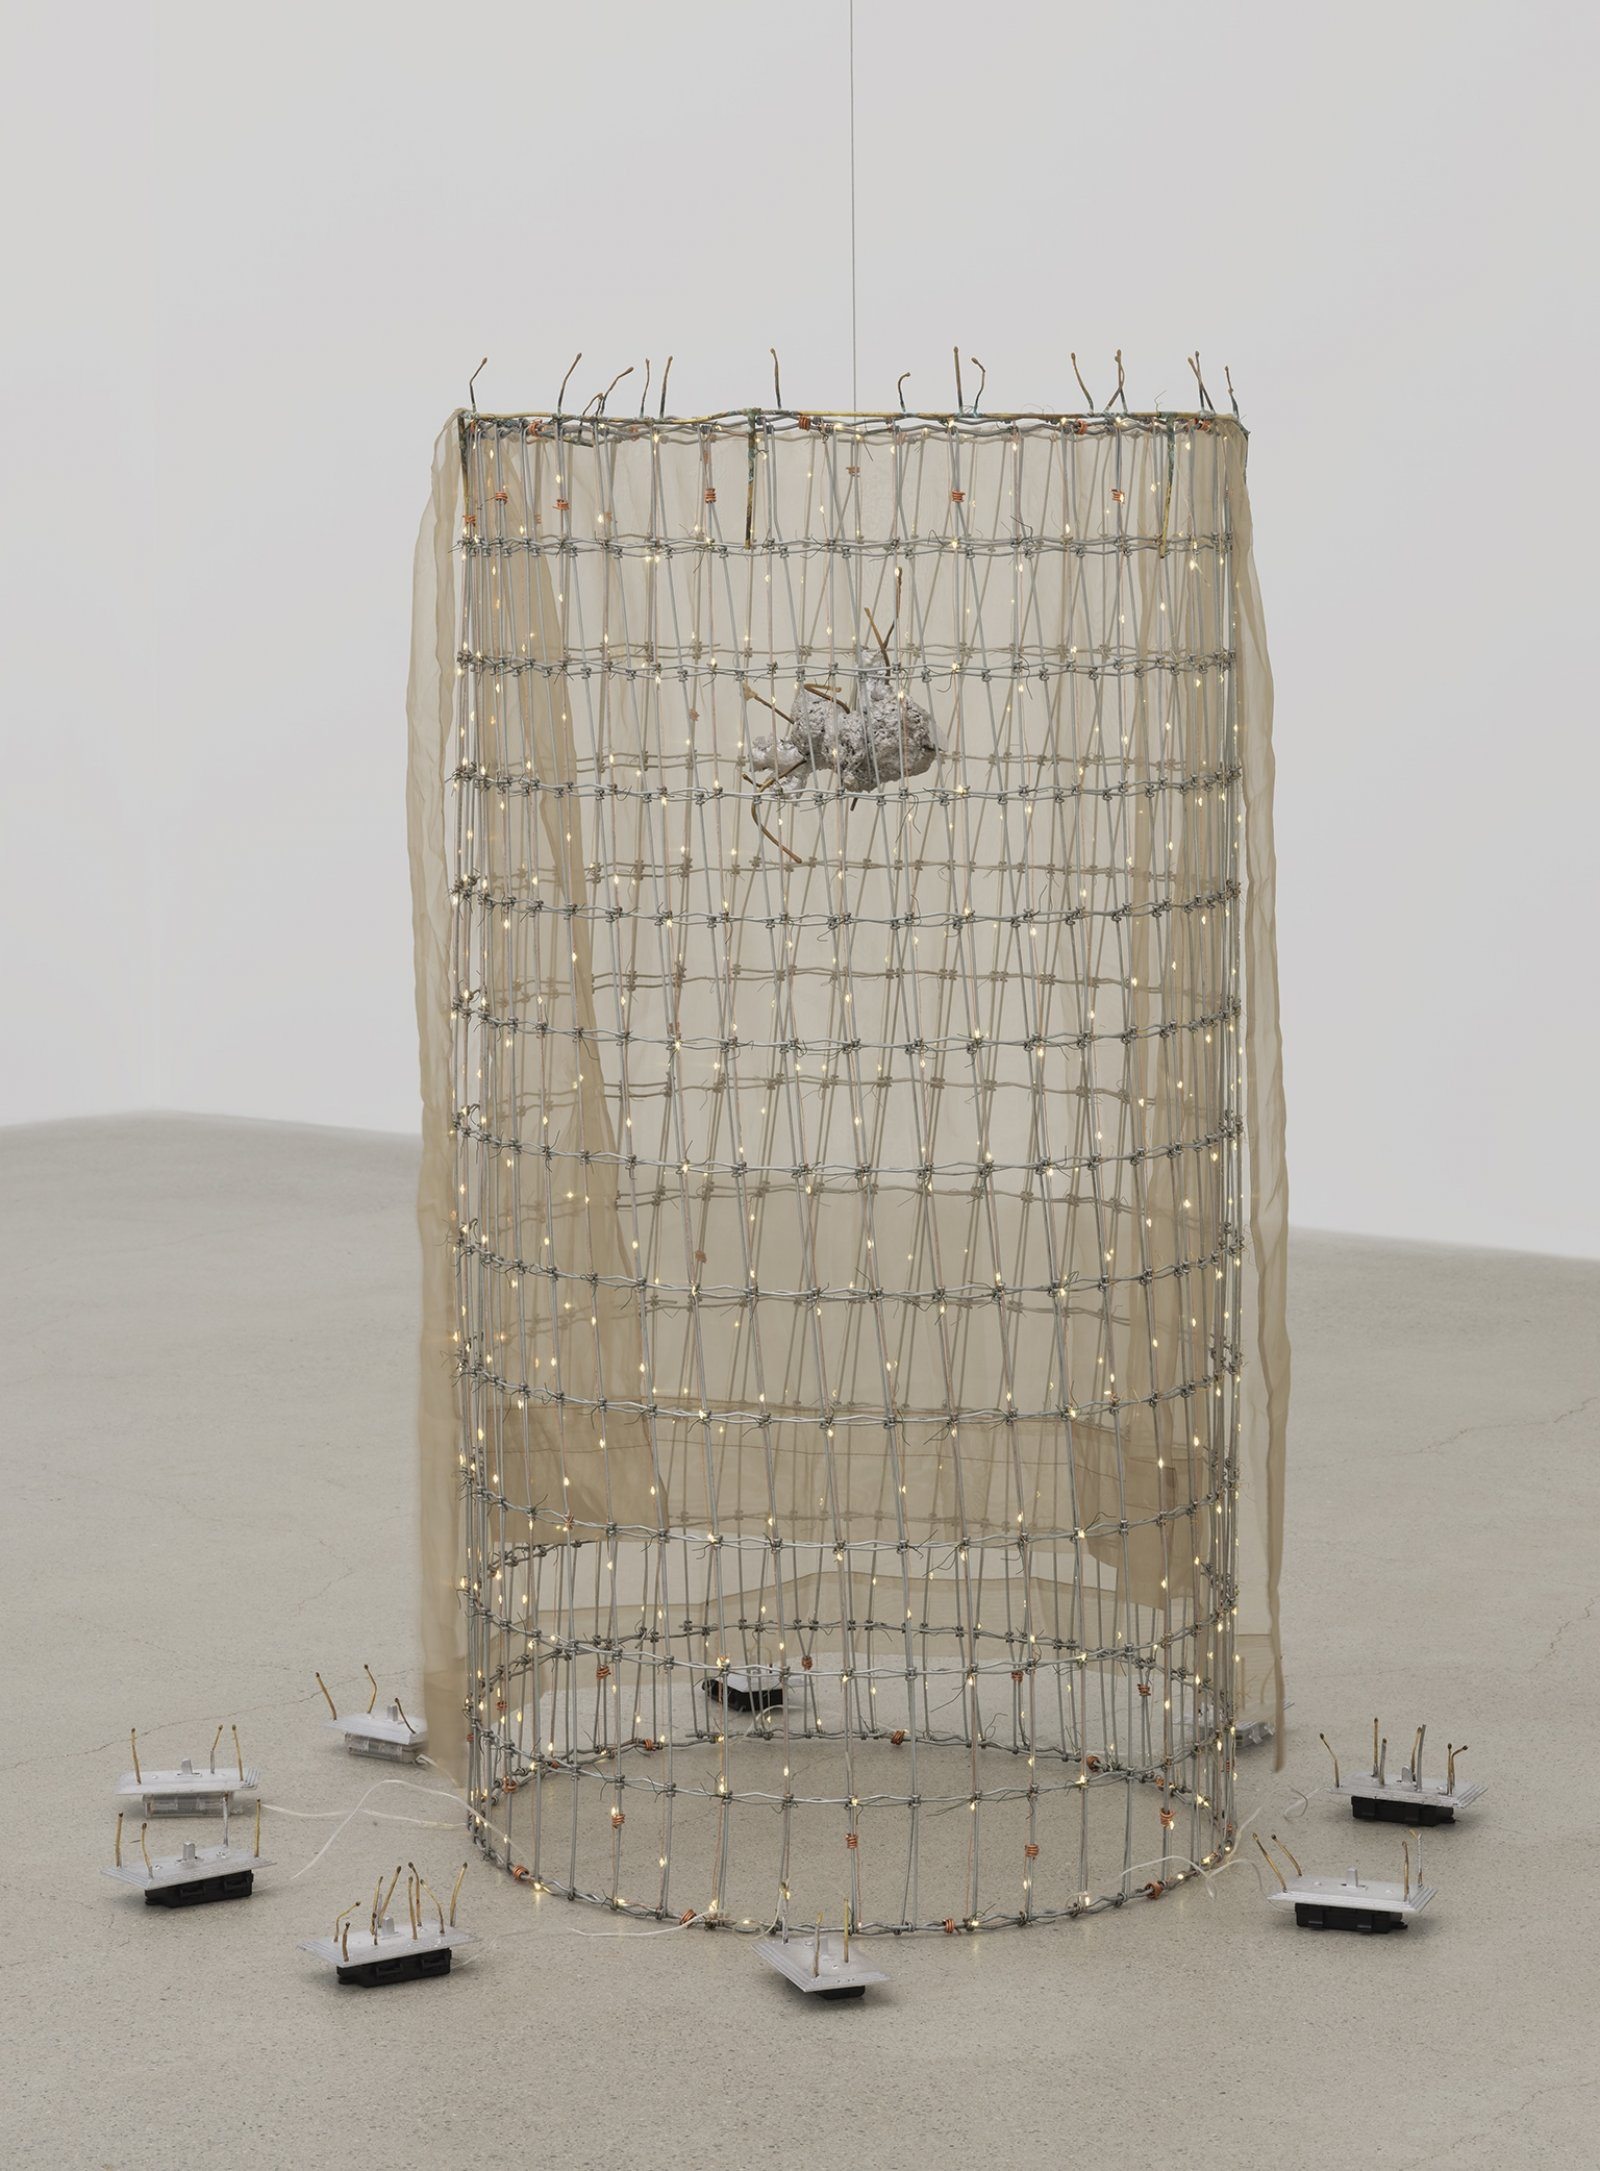 Rochelle Goldberg, Trigger: Towards everything they've ever wanted, 2019, ranch fencing, batteries, fairy lights, polyester curtain, aluminum, cast bronze matches, copper wire, 51 x 51 x 44 in. (130 x 130 x 112 cm) by Rochelle Goldberg